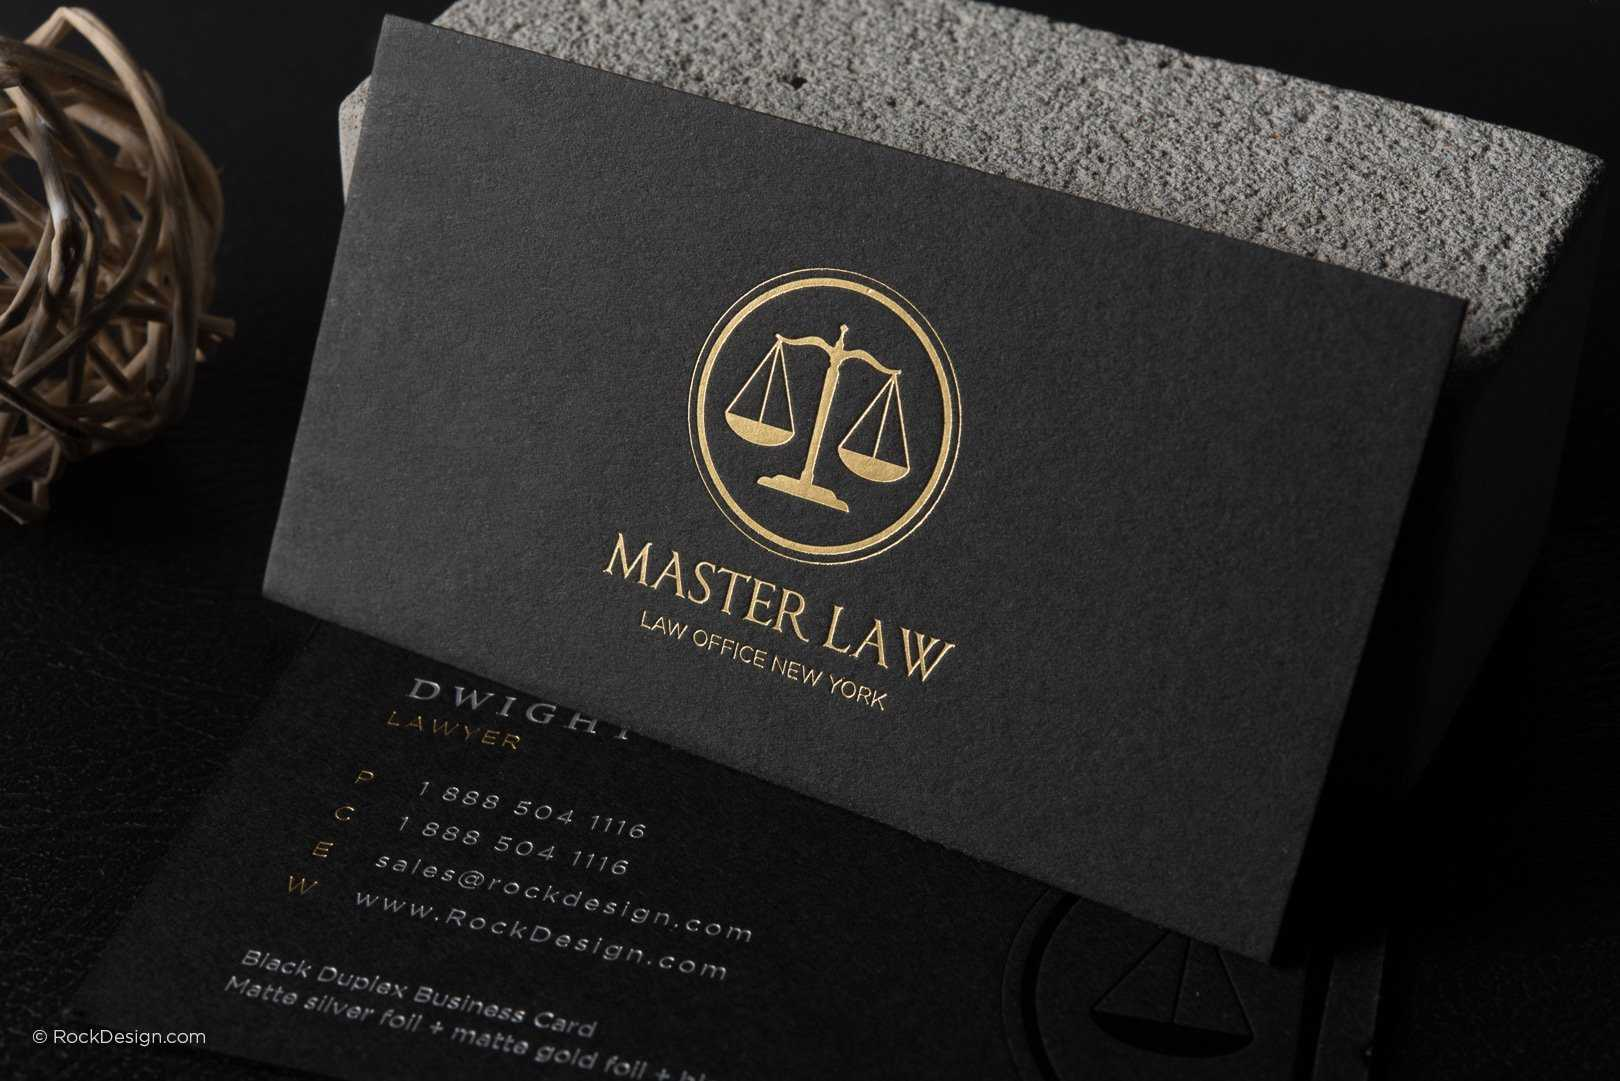 Free Lawyer Business Card Template | Rockdesign pertaining to Legal Business Cards Templates Free